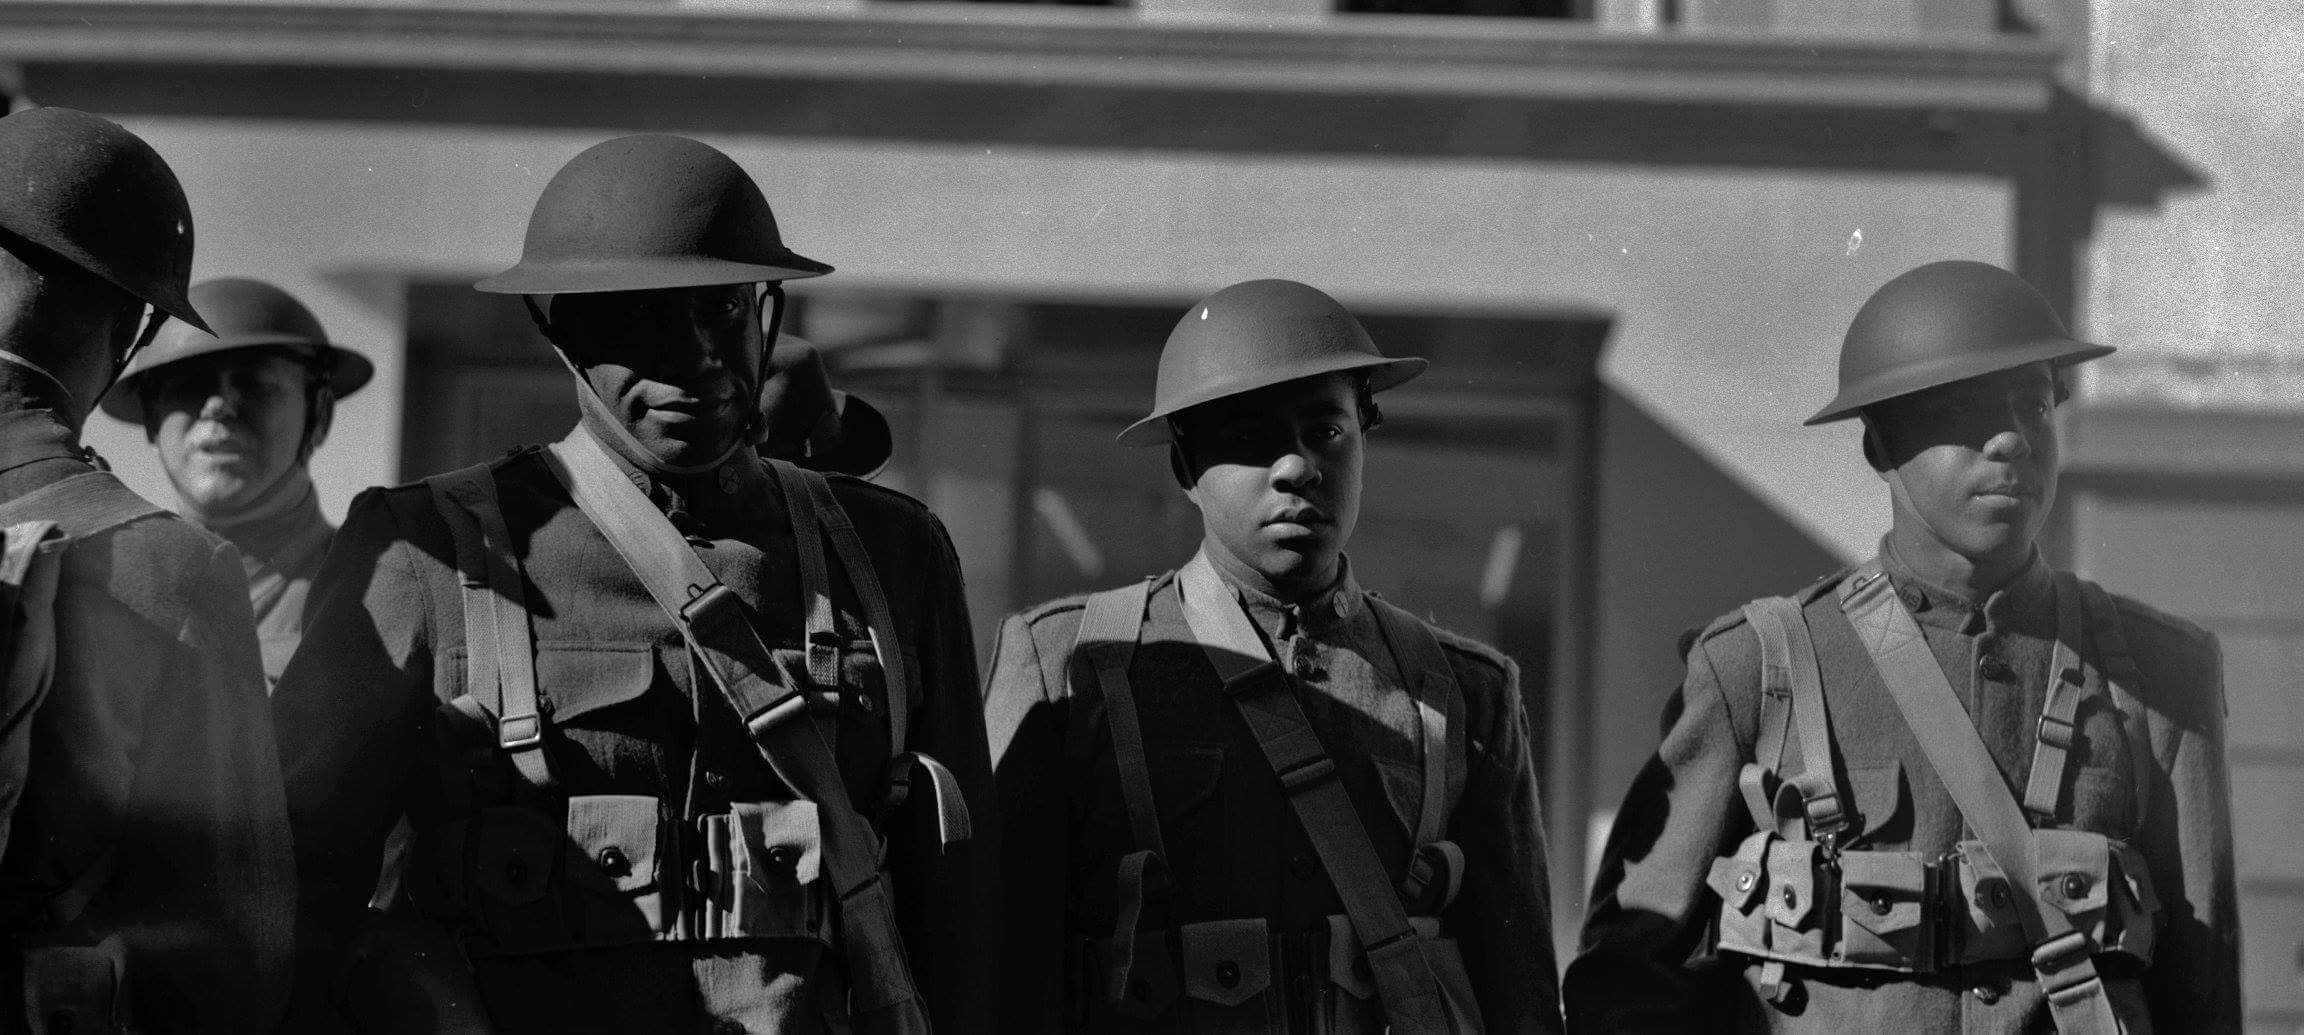 harlem hellfighters The harlem hellfighters is part of the barbican's 2018 season, the art of change, which explores how artists respond to, reflect and affect change in the social and political landscape.